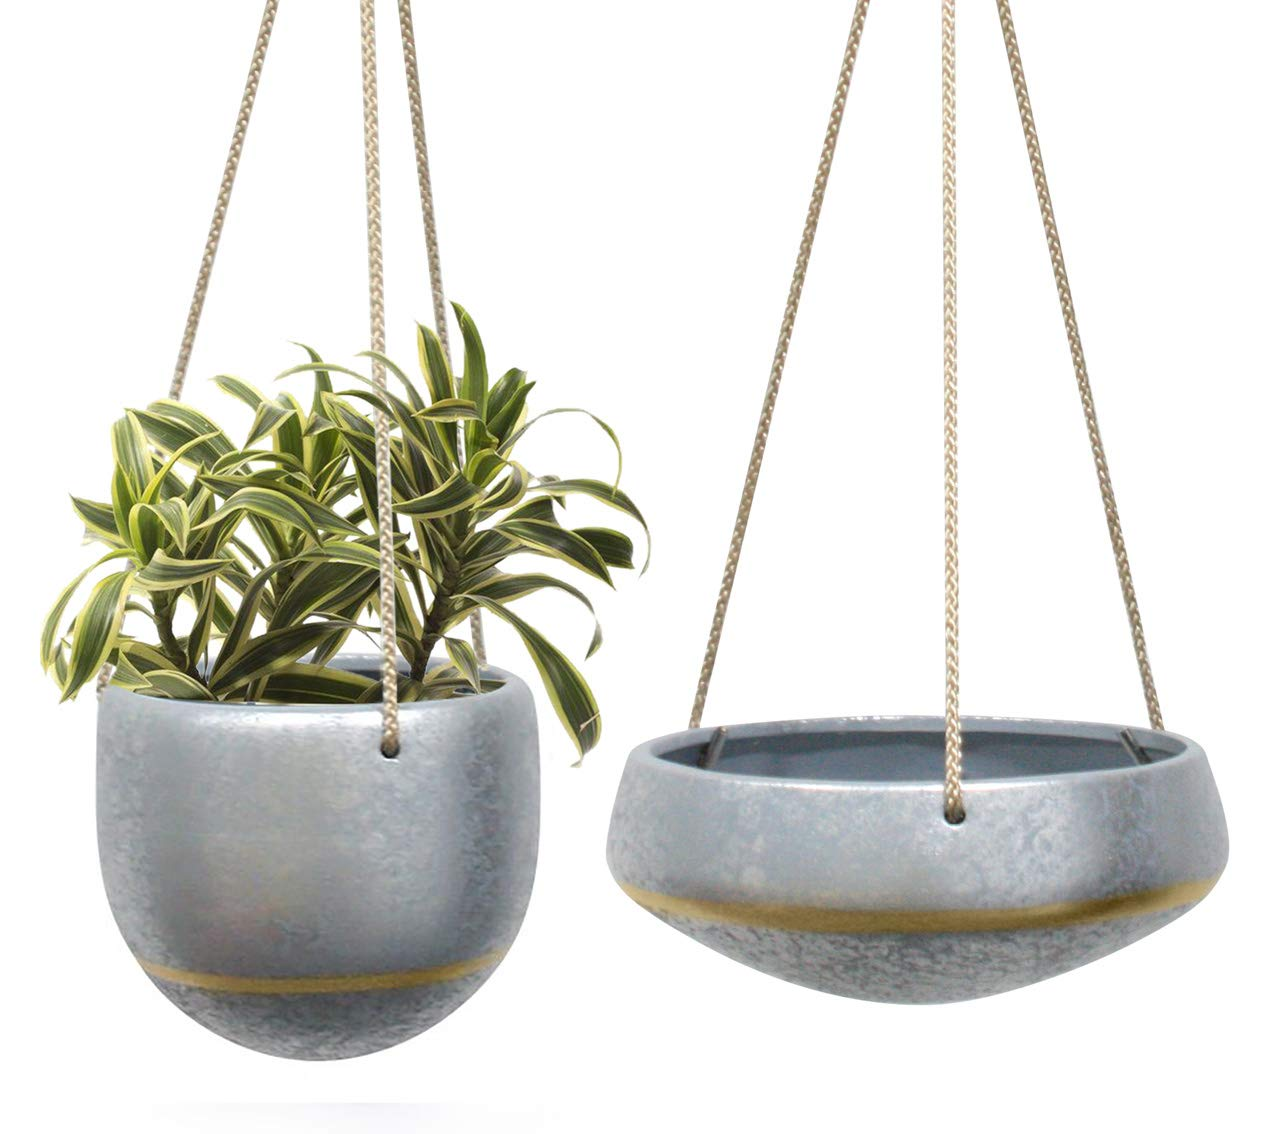 "Hanging Planters Flower Plant Pot - Silver Galvanized Ceramic Shallow 8"" & Deep 6"" Herb Ivy Succulent Planter Indoor with Gold Accent, Home Decor Gift, Set of 2"